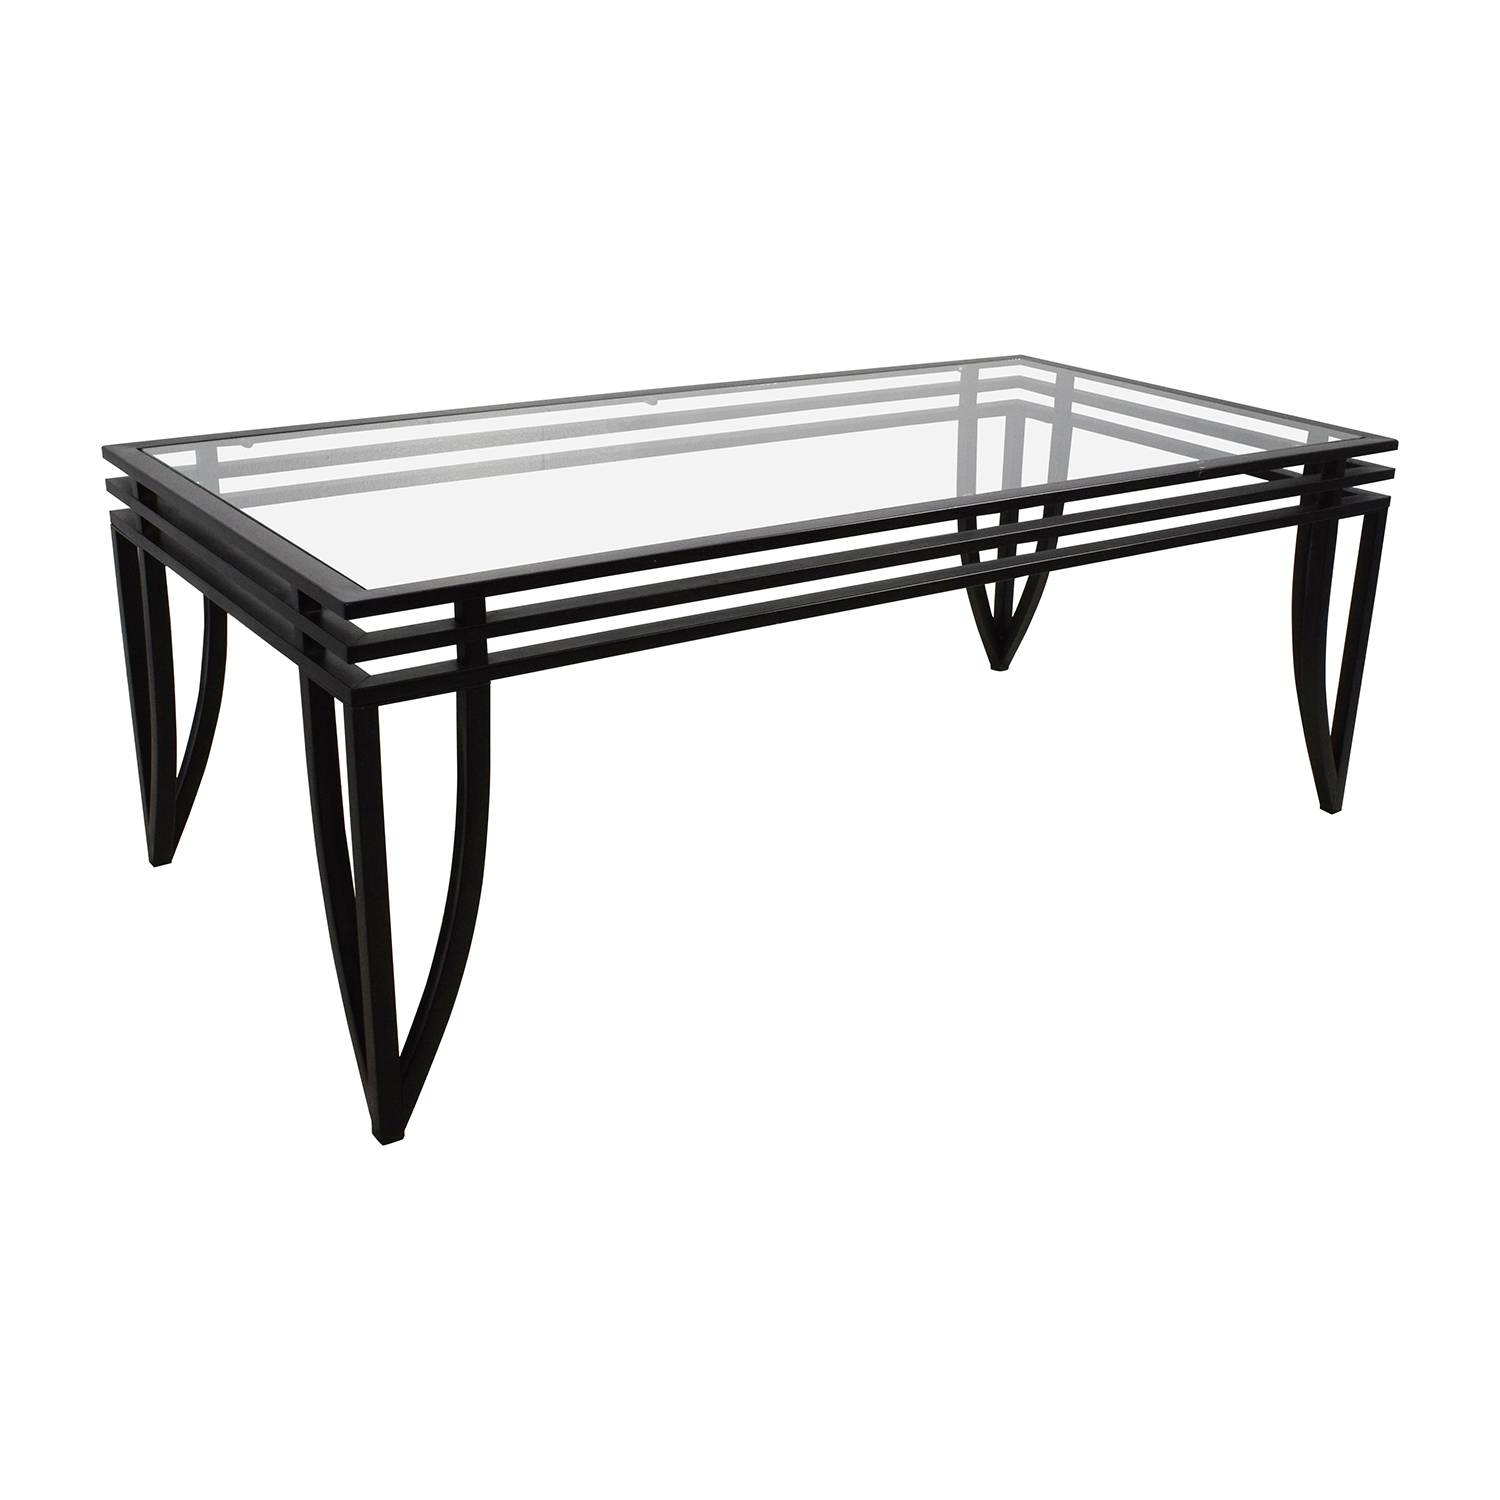 77% Off   Ashley Furniture Ashley Furniture Rectangular Glass And Pertaining To Black Coffee Tables (Photo 30 of 30)